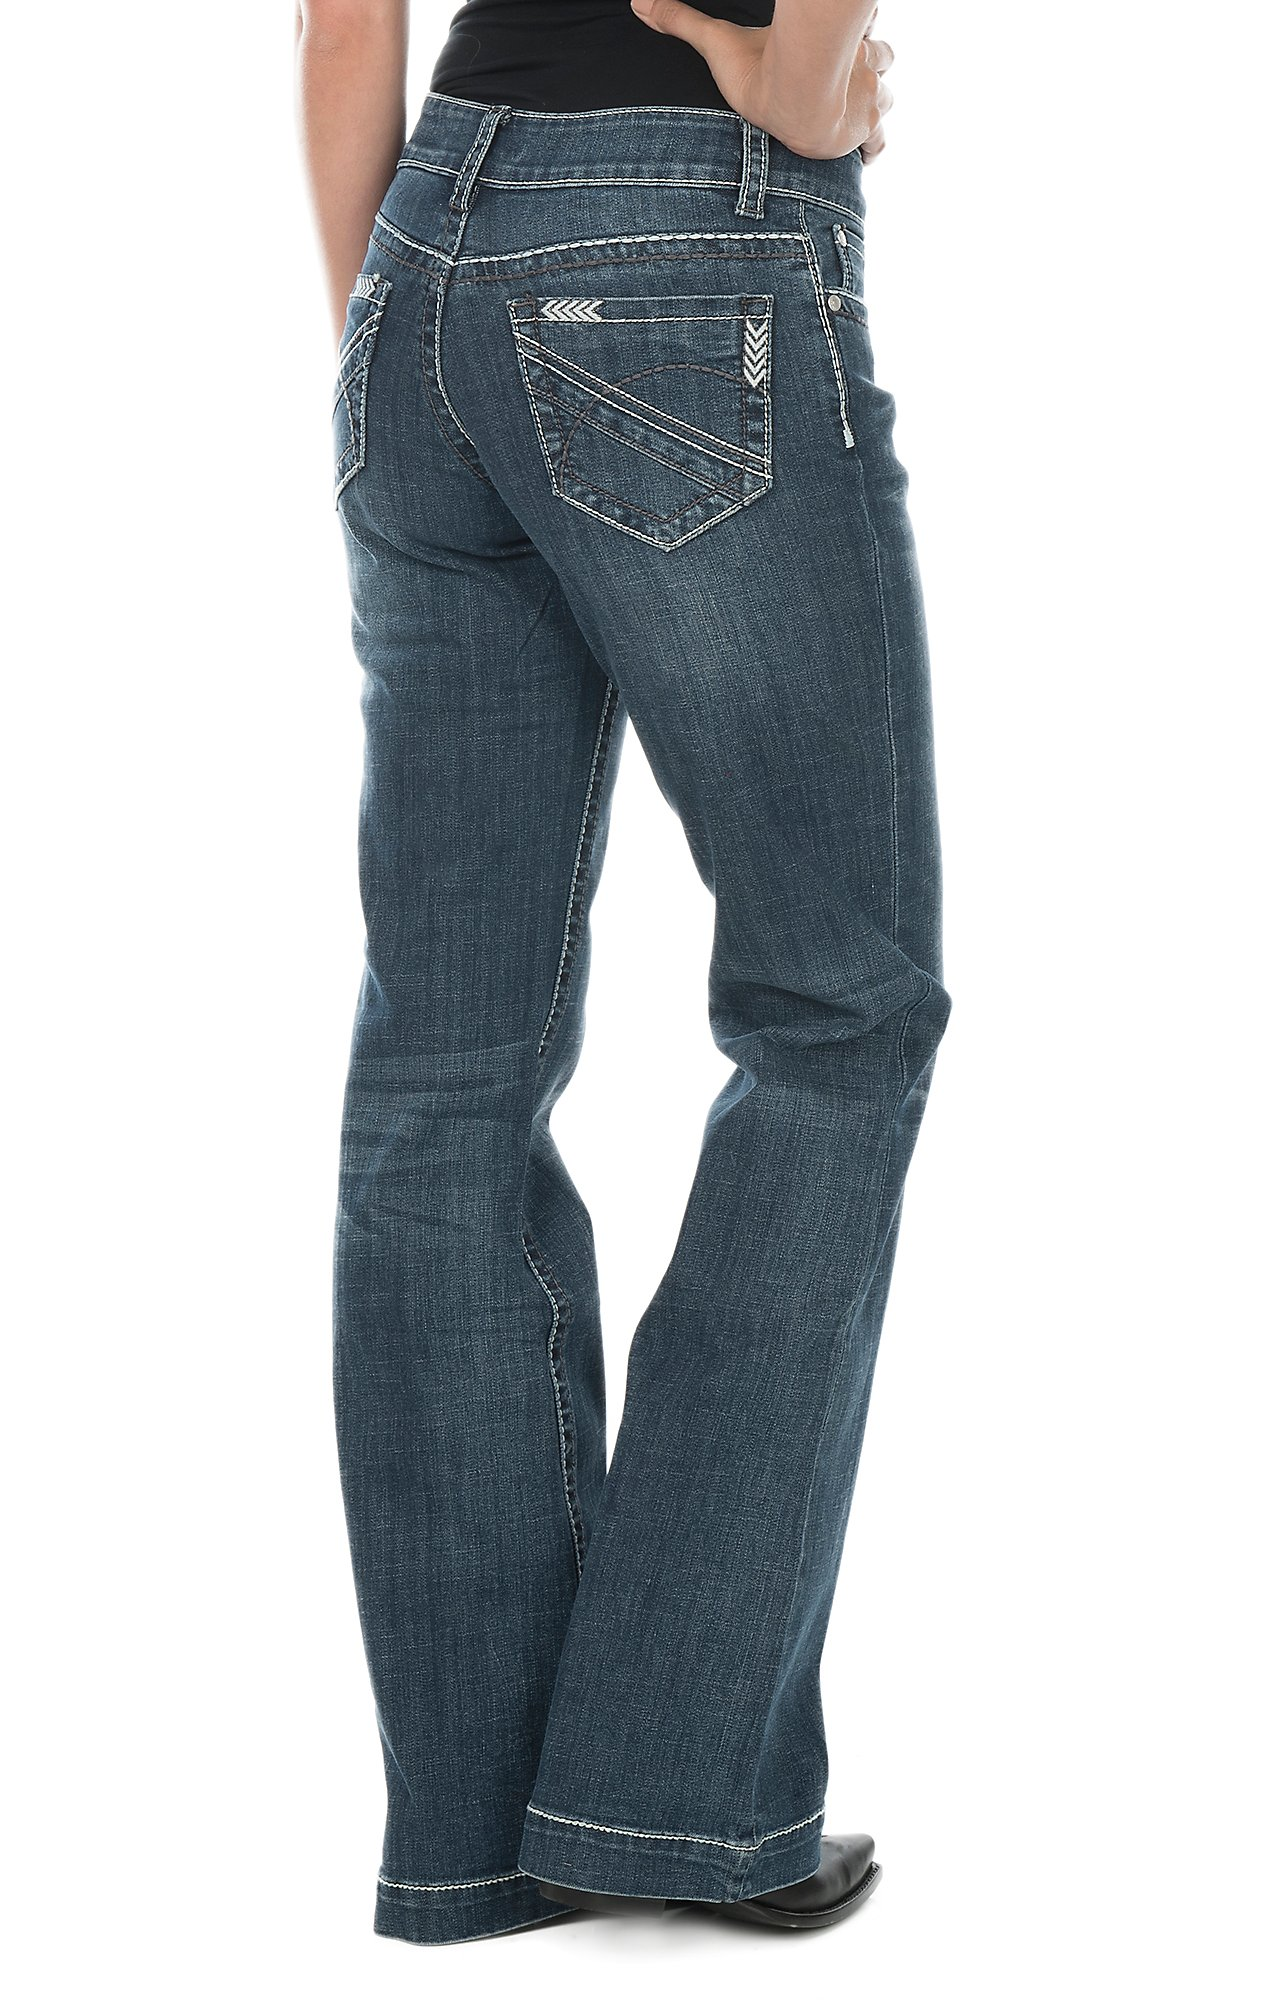 Shop Women's Western Jeans | Free Shipping $50   | Cavender's